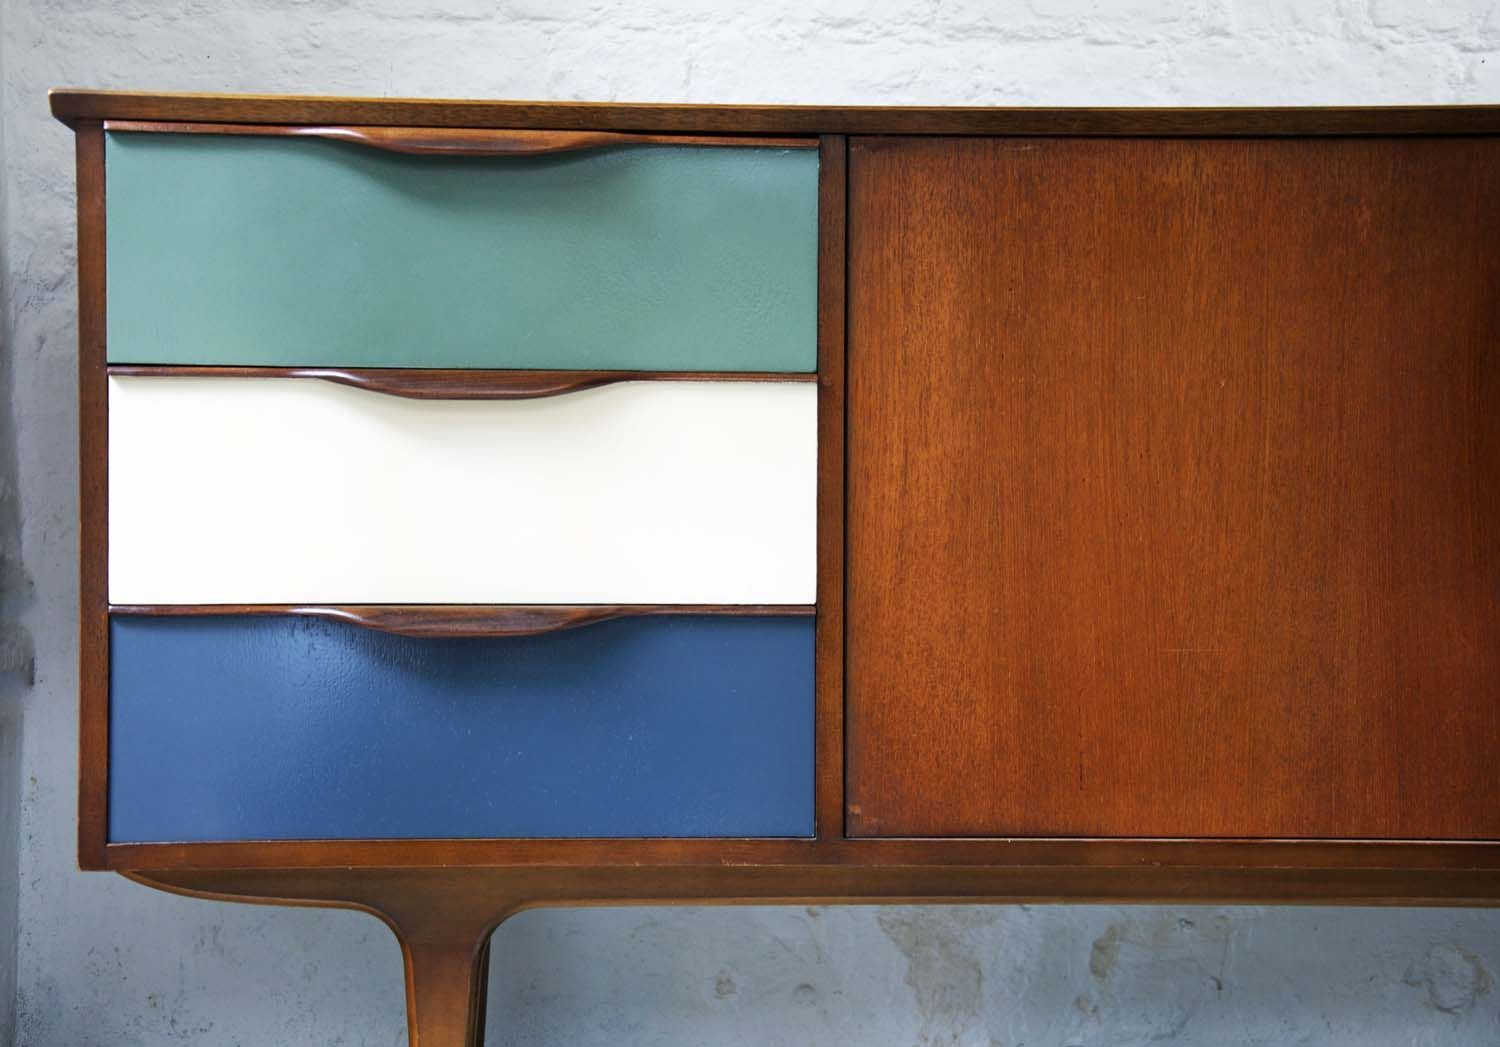 Quirky Bedroom Furniture I Love This What A Great Idea When Restoring To Add A Splash Of